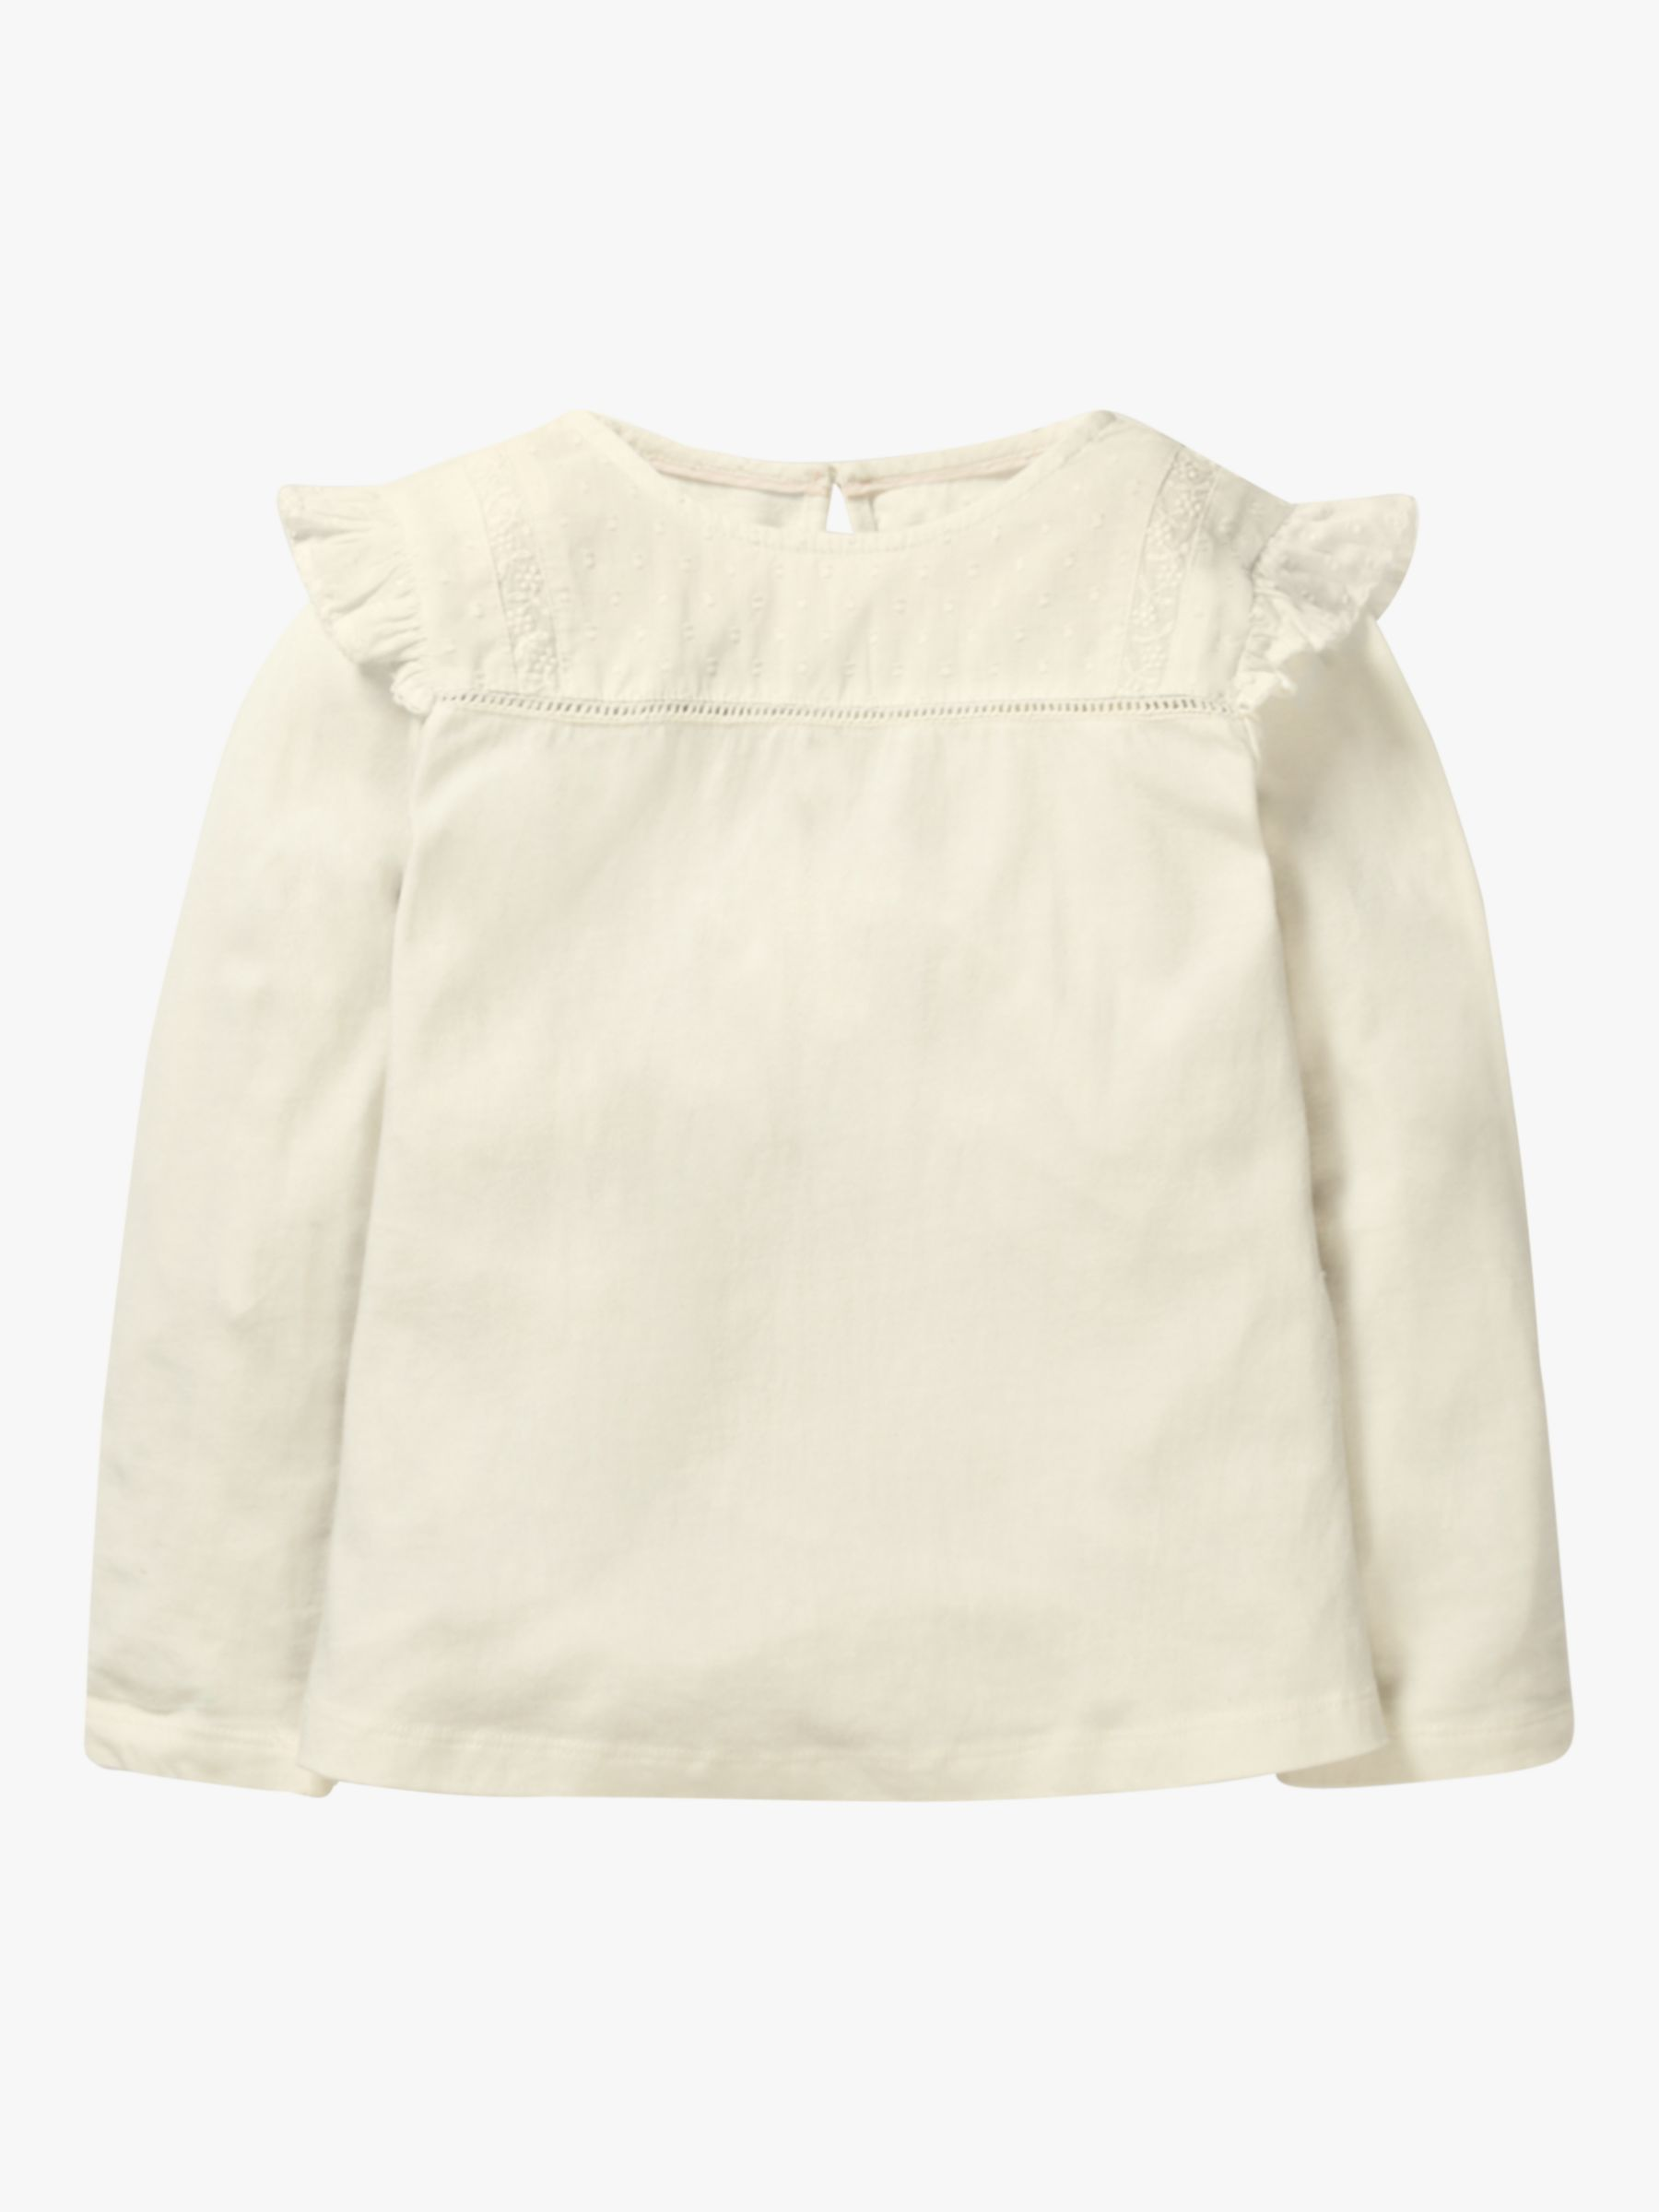 Mini Boden Mini Boden Girls' Frilly Jersey Top, Ivory